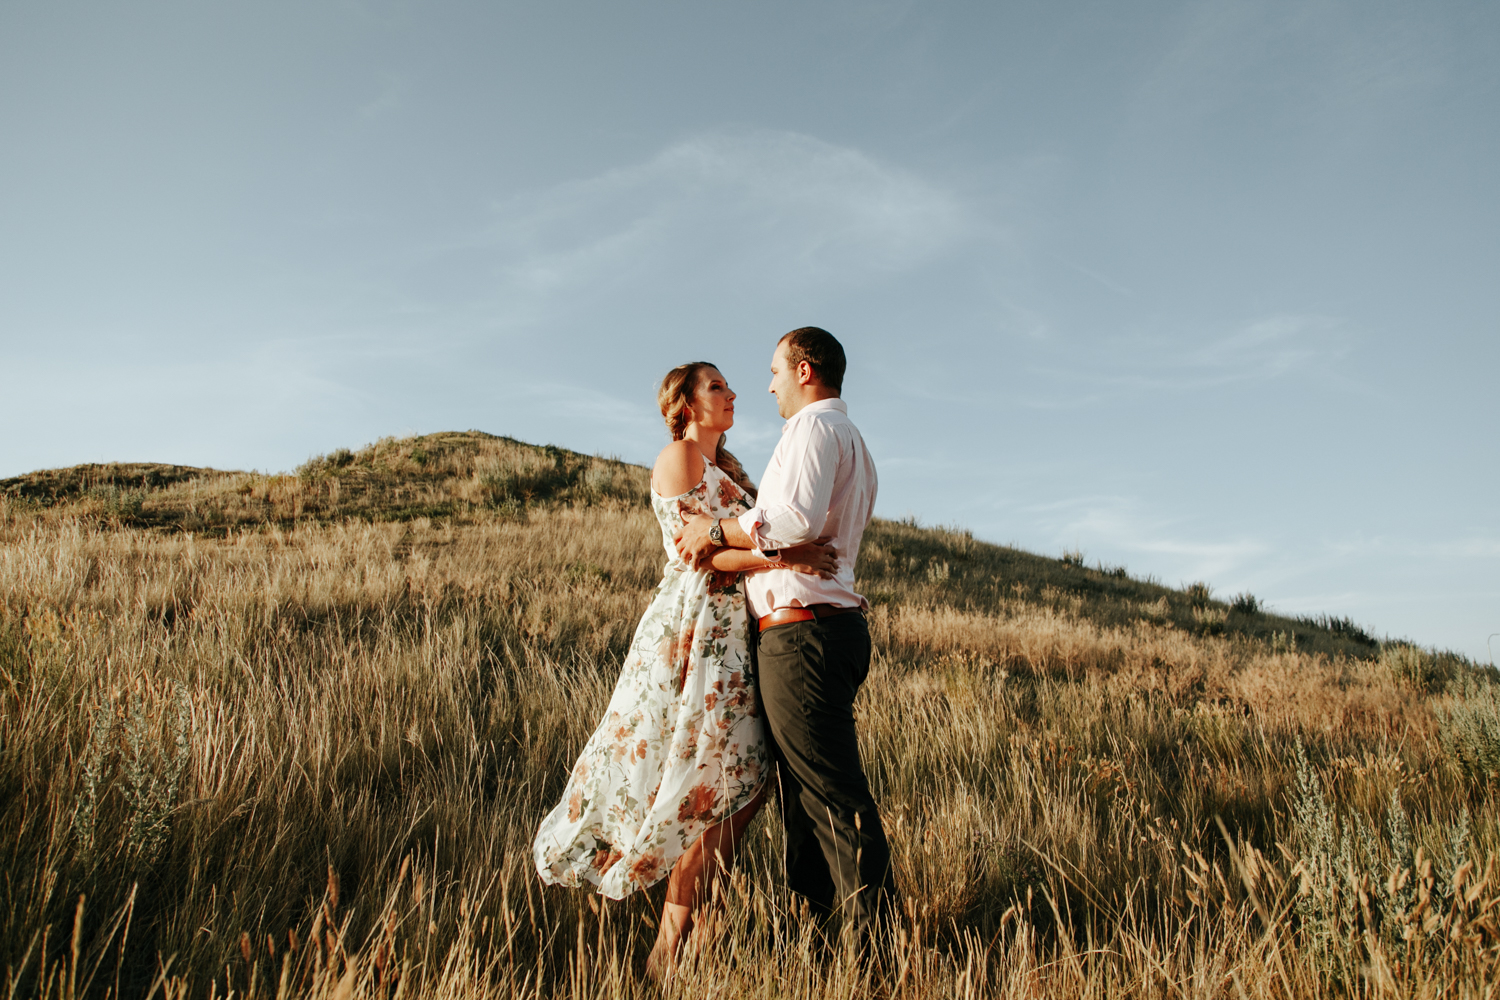 lethbridge-wedding-photographer-love-and-be-loved-photography-katie-kelli-engagement-picture-image-photo-12.jpg